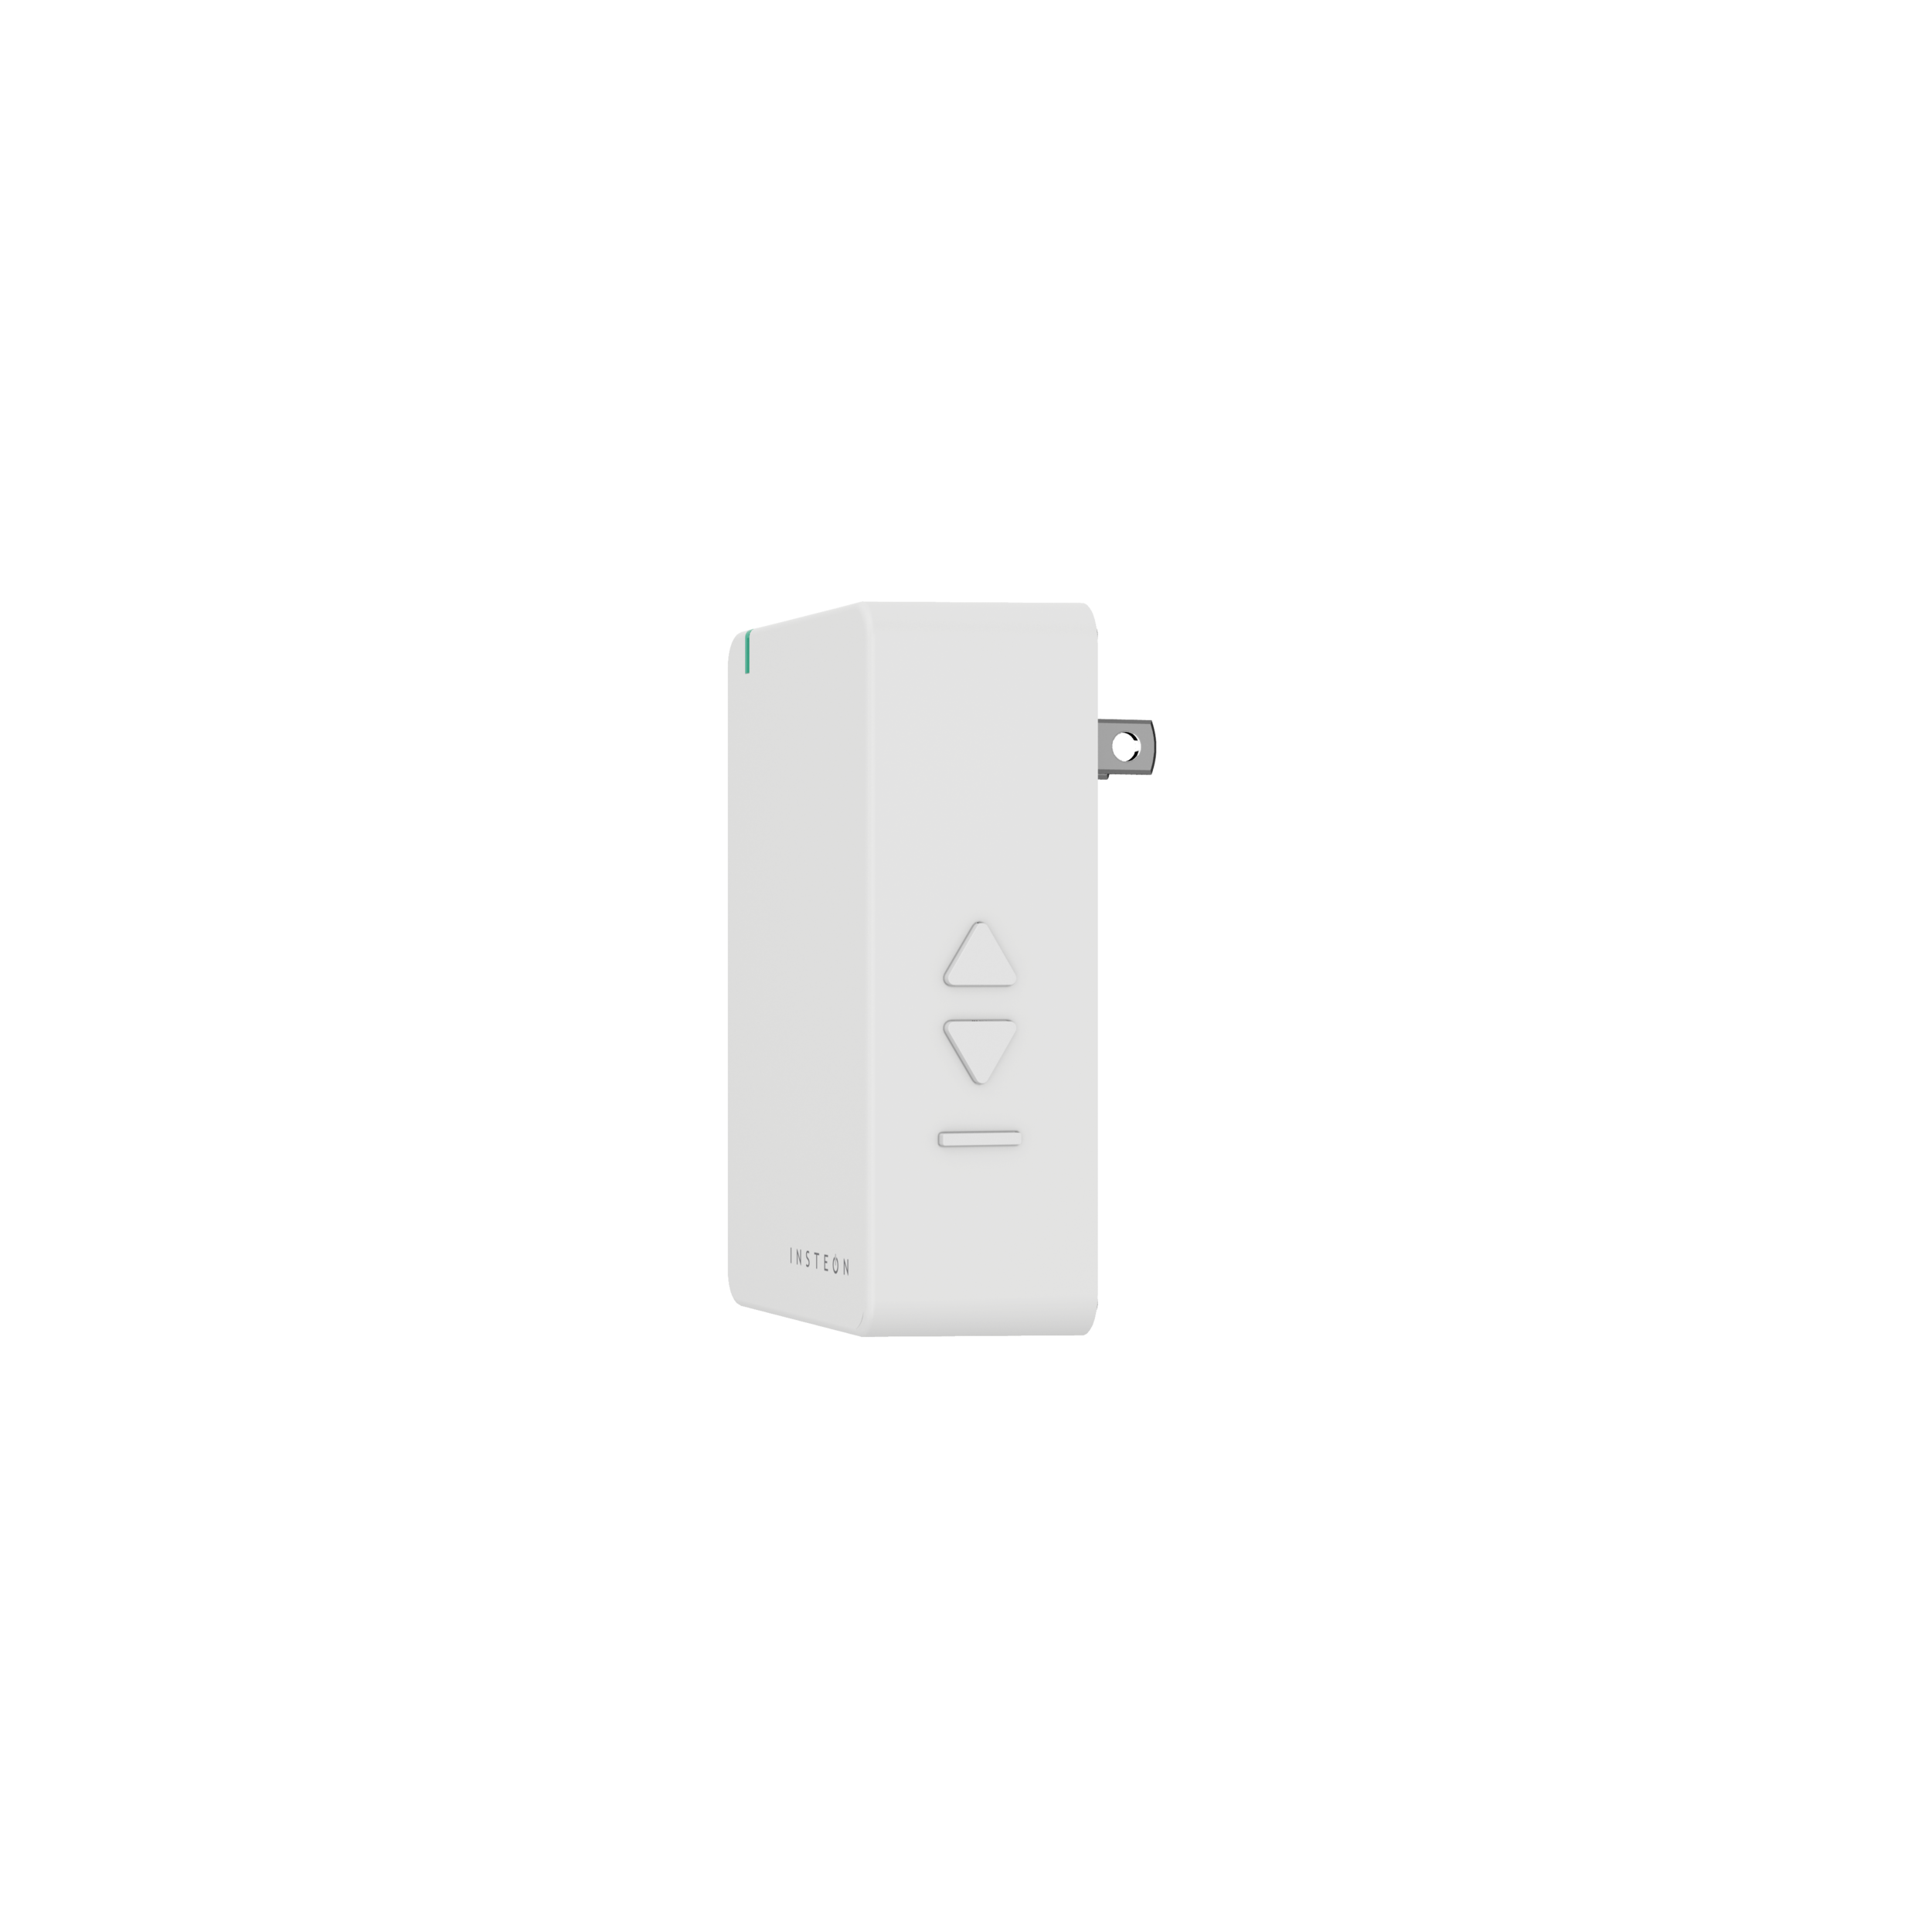 Dimmer Module 05.png